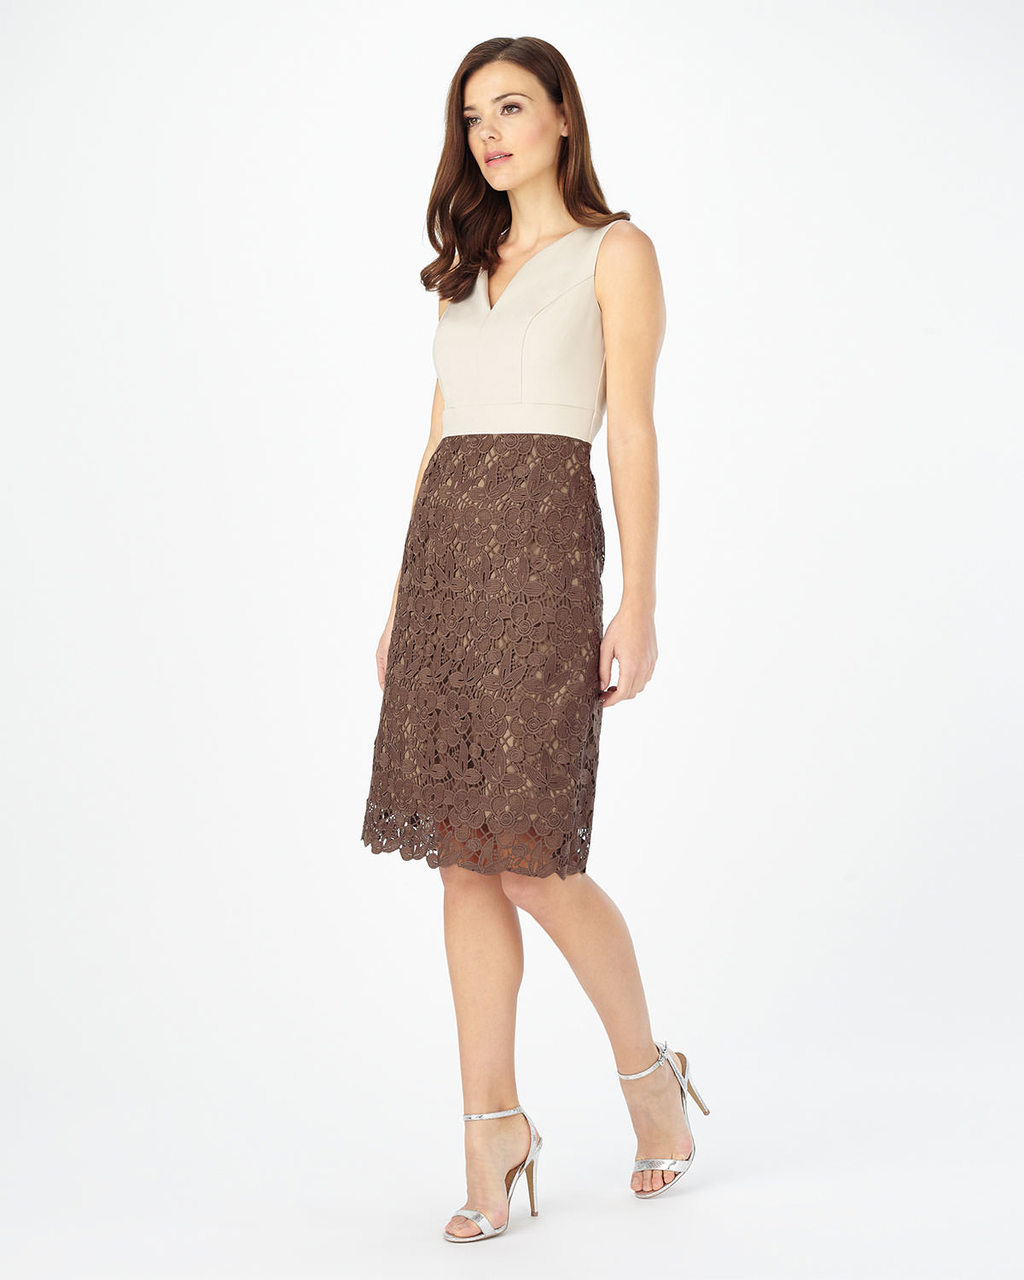 Palmer Dress - style: shift; neckline: v-neck; fit: tailored/fitted; pattern: plain; sleeve style: sleeveless; secondary colour: ivory/cream; predominant colour: chocolate brown; length: on the knee; fibres: polyester/polyamide - 100%; occasions: occasion; sleeve length: sleeveless; pattern type: fabric; texture group: other - light to midweight; embellishment: lace; season: s/s 2016